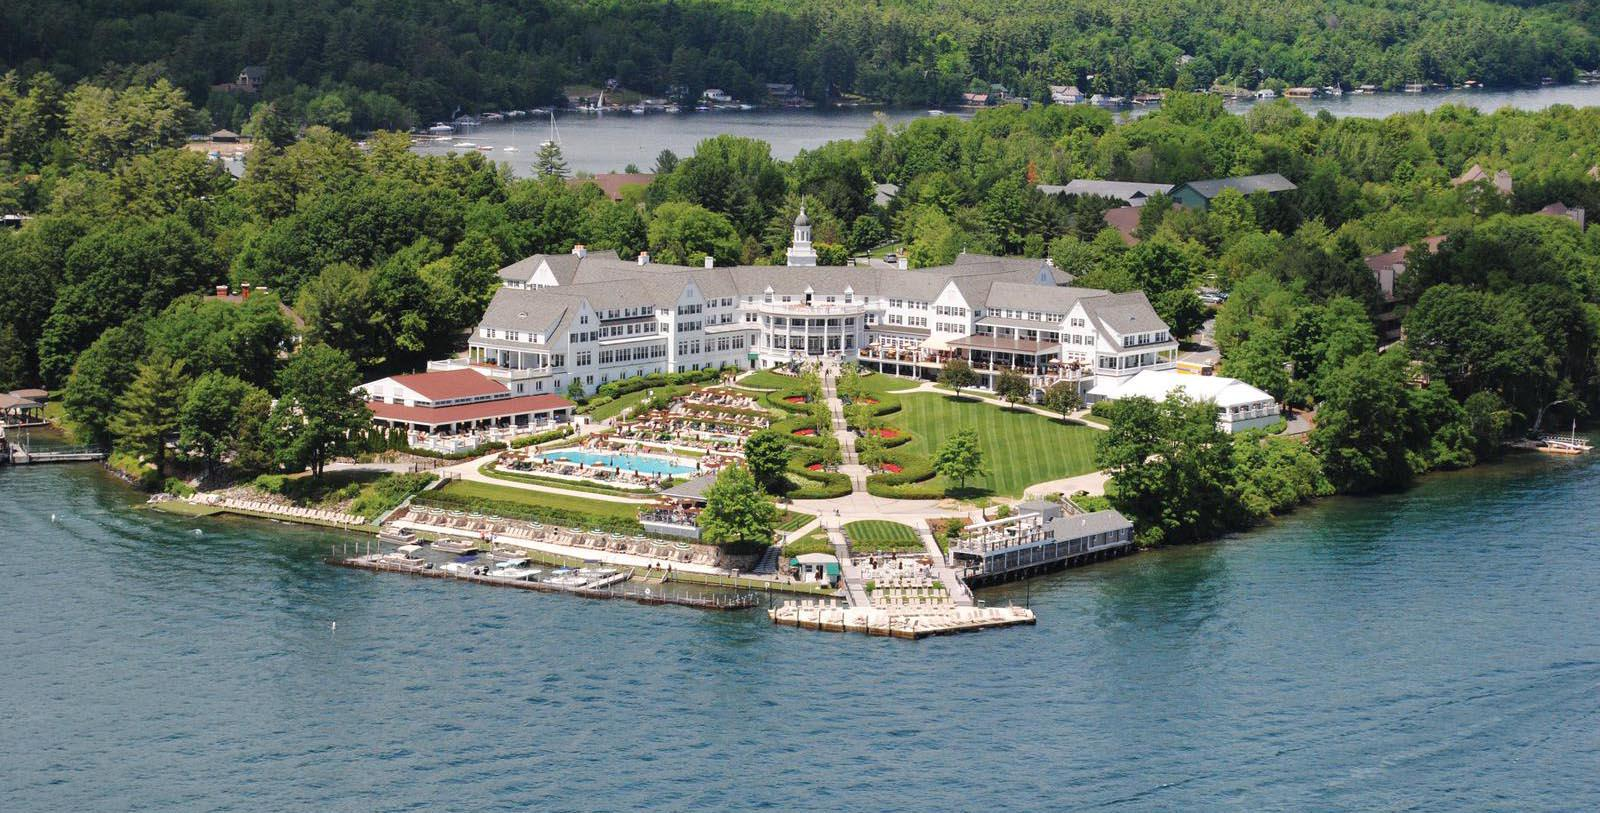 Image of The Sagamore Resort, Member of Historic Hotels of America, Special Offers, Discounted Rates, Families, Romantic Escape, Honeymoons, Anniversaries, Reunions